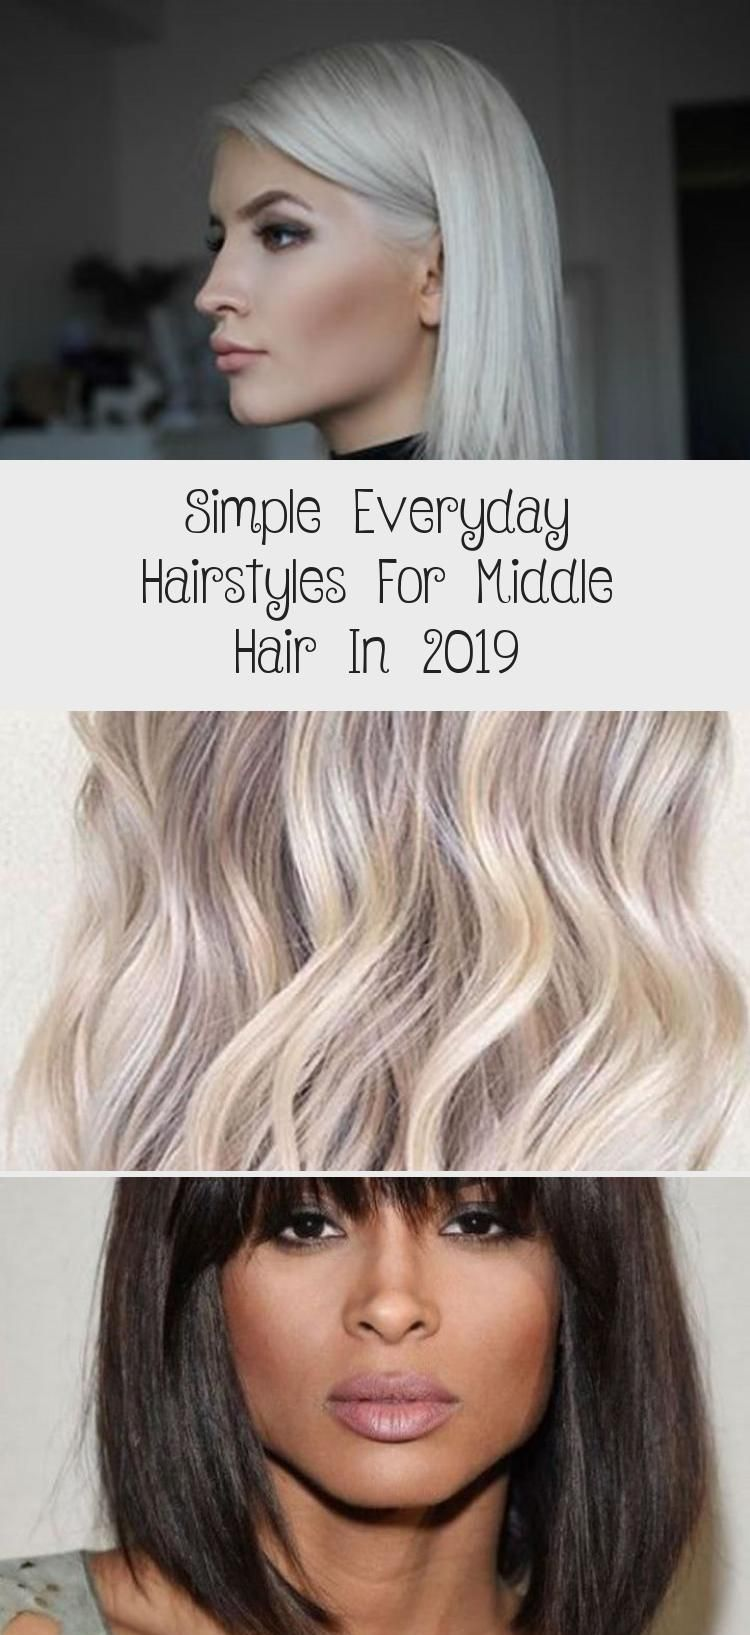 Simple Everyday Hairstyles For Middle Hair In 2019 | Easy everyday hairstyles, Everyday ...